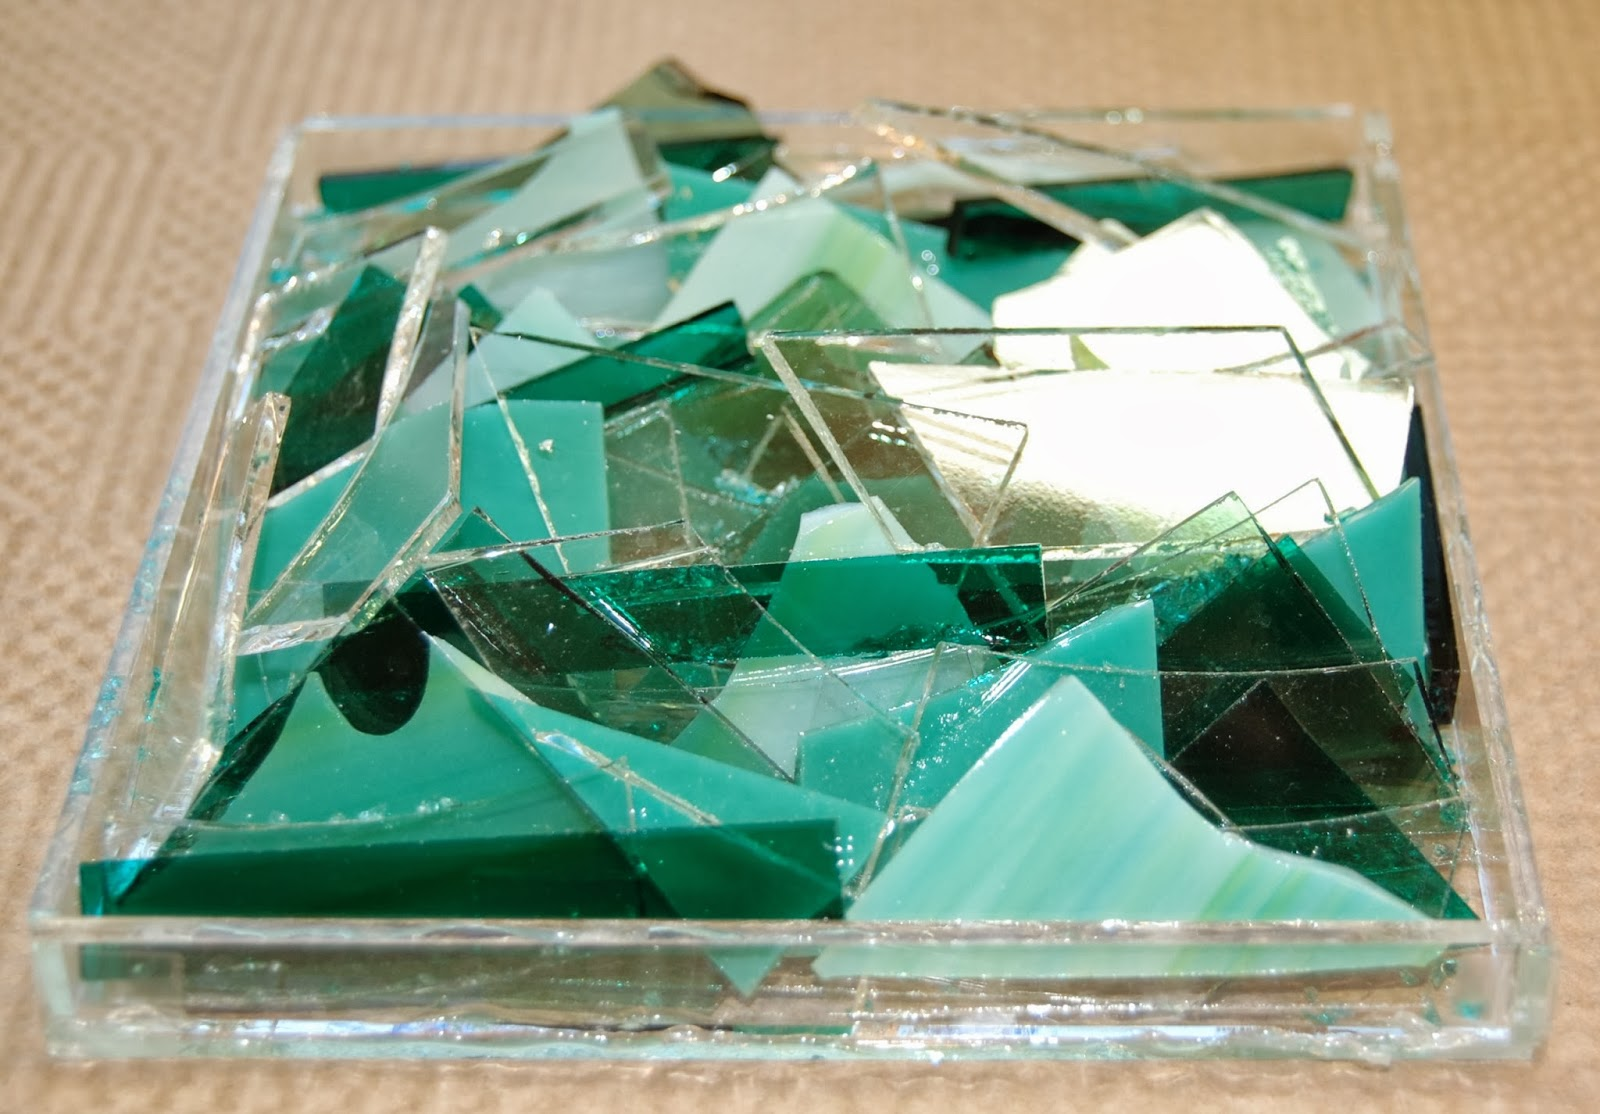 Dana worley fused glass designs one man 39 s trash for Projects with glass